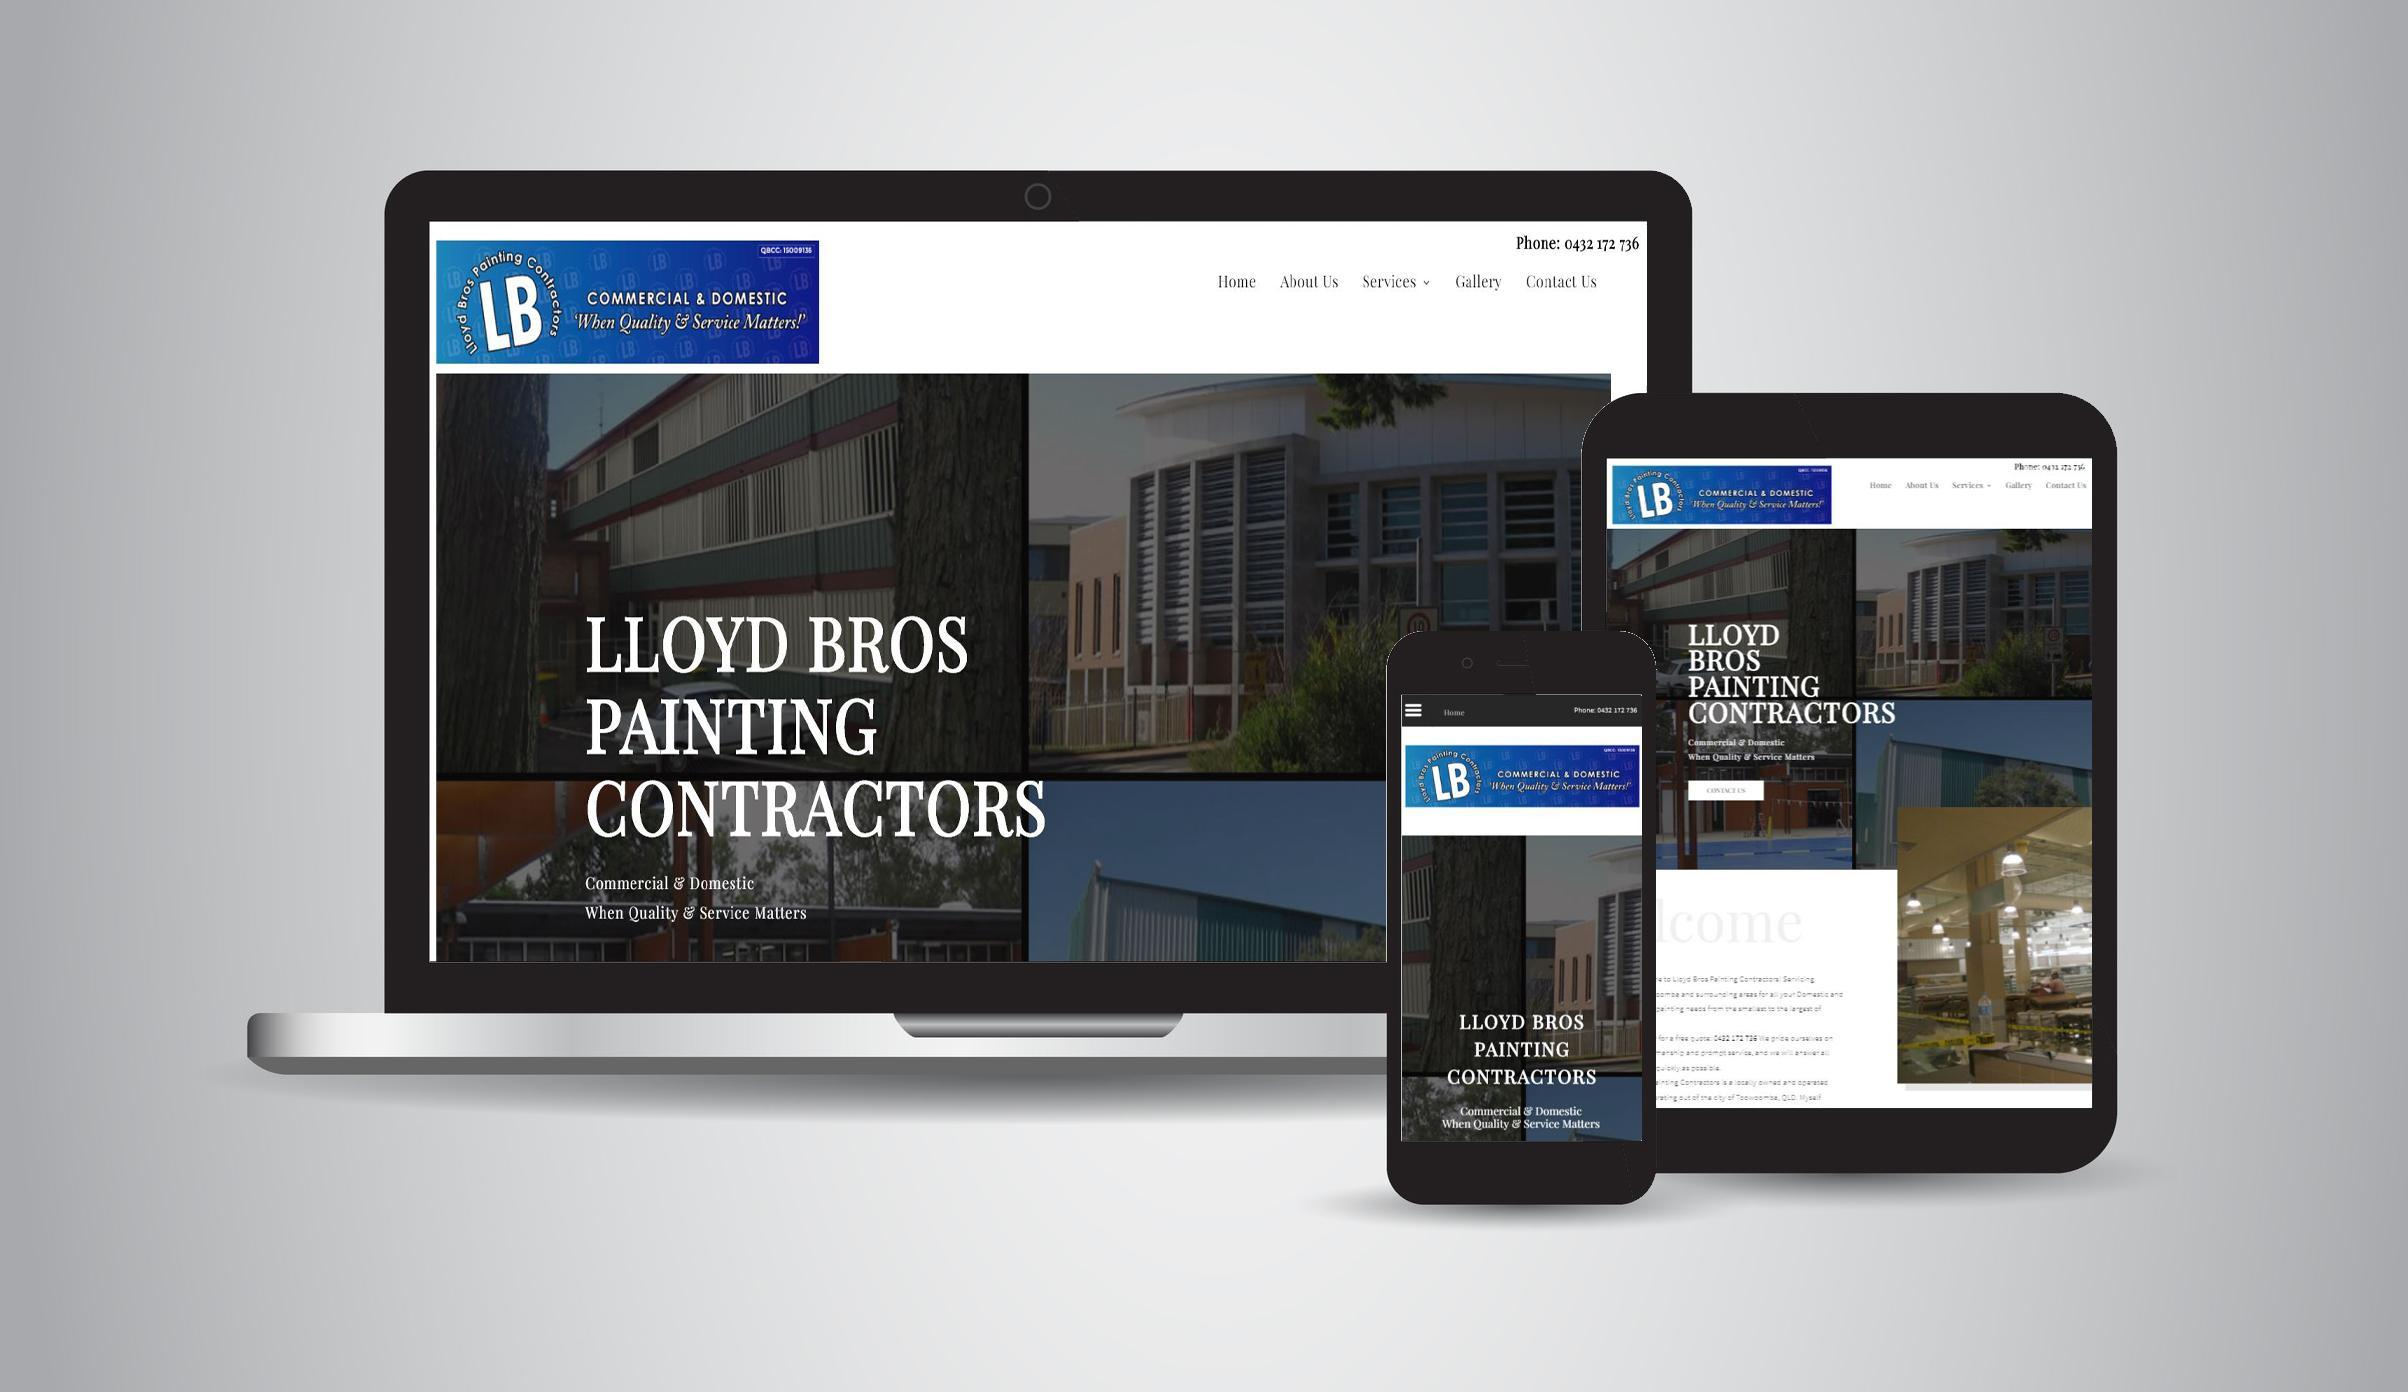 Lloyd Bros Painting Contractors - Painters & Decorators